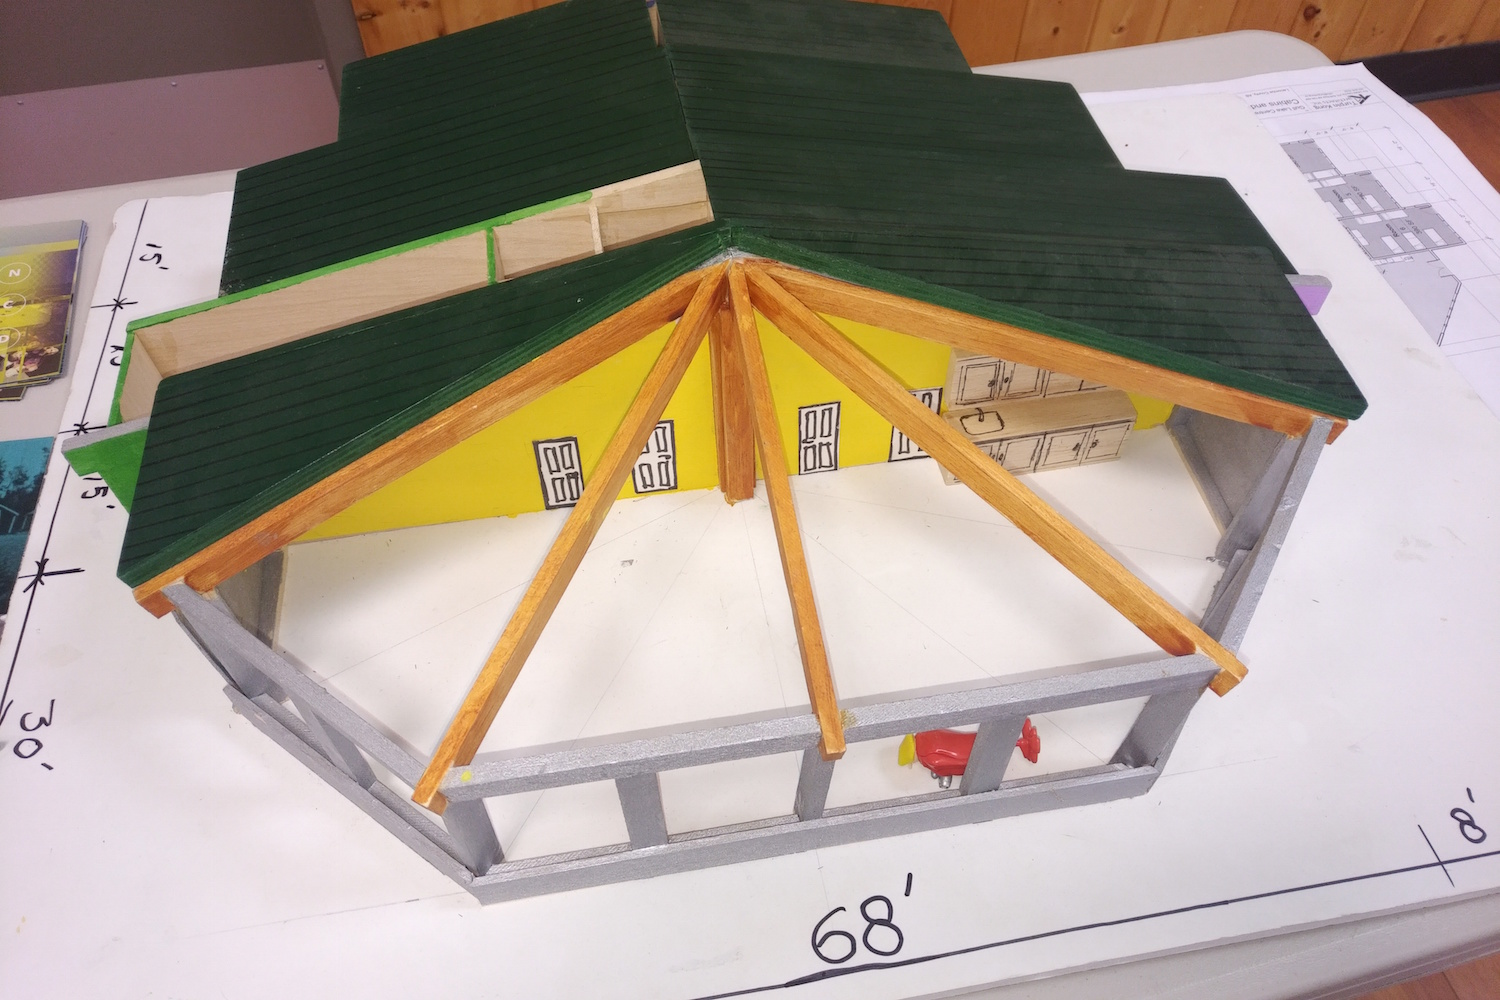 Gull lake - Prototype of Future Build at Gull Lake Baptist Centre